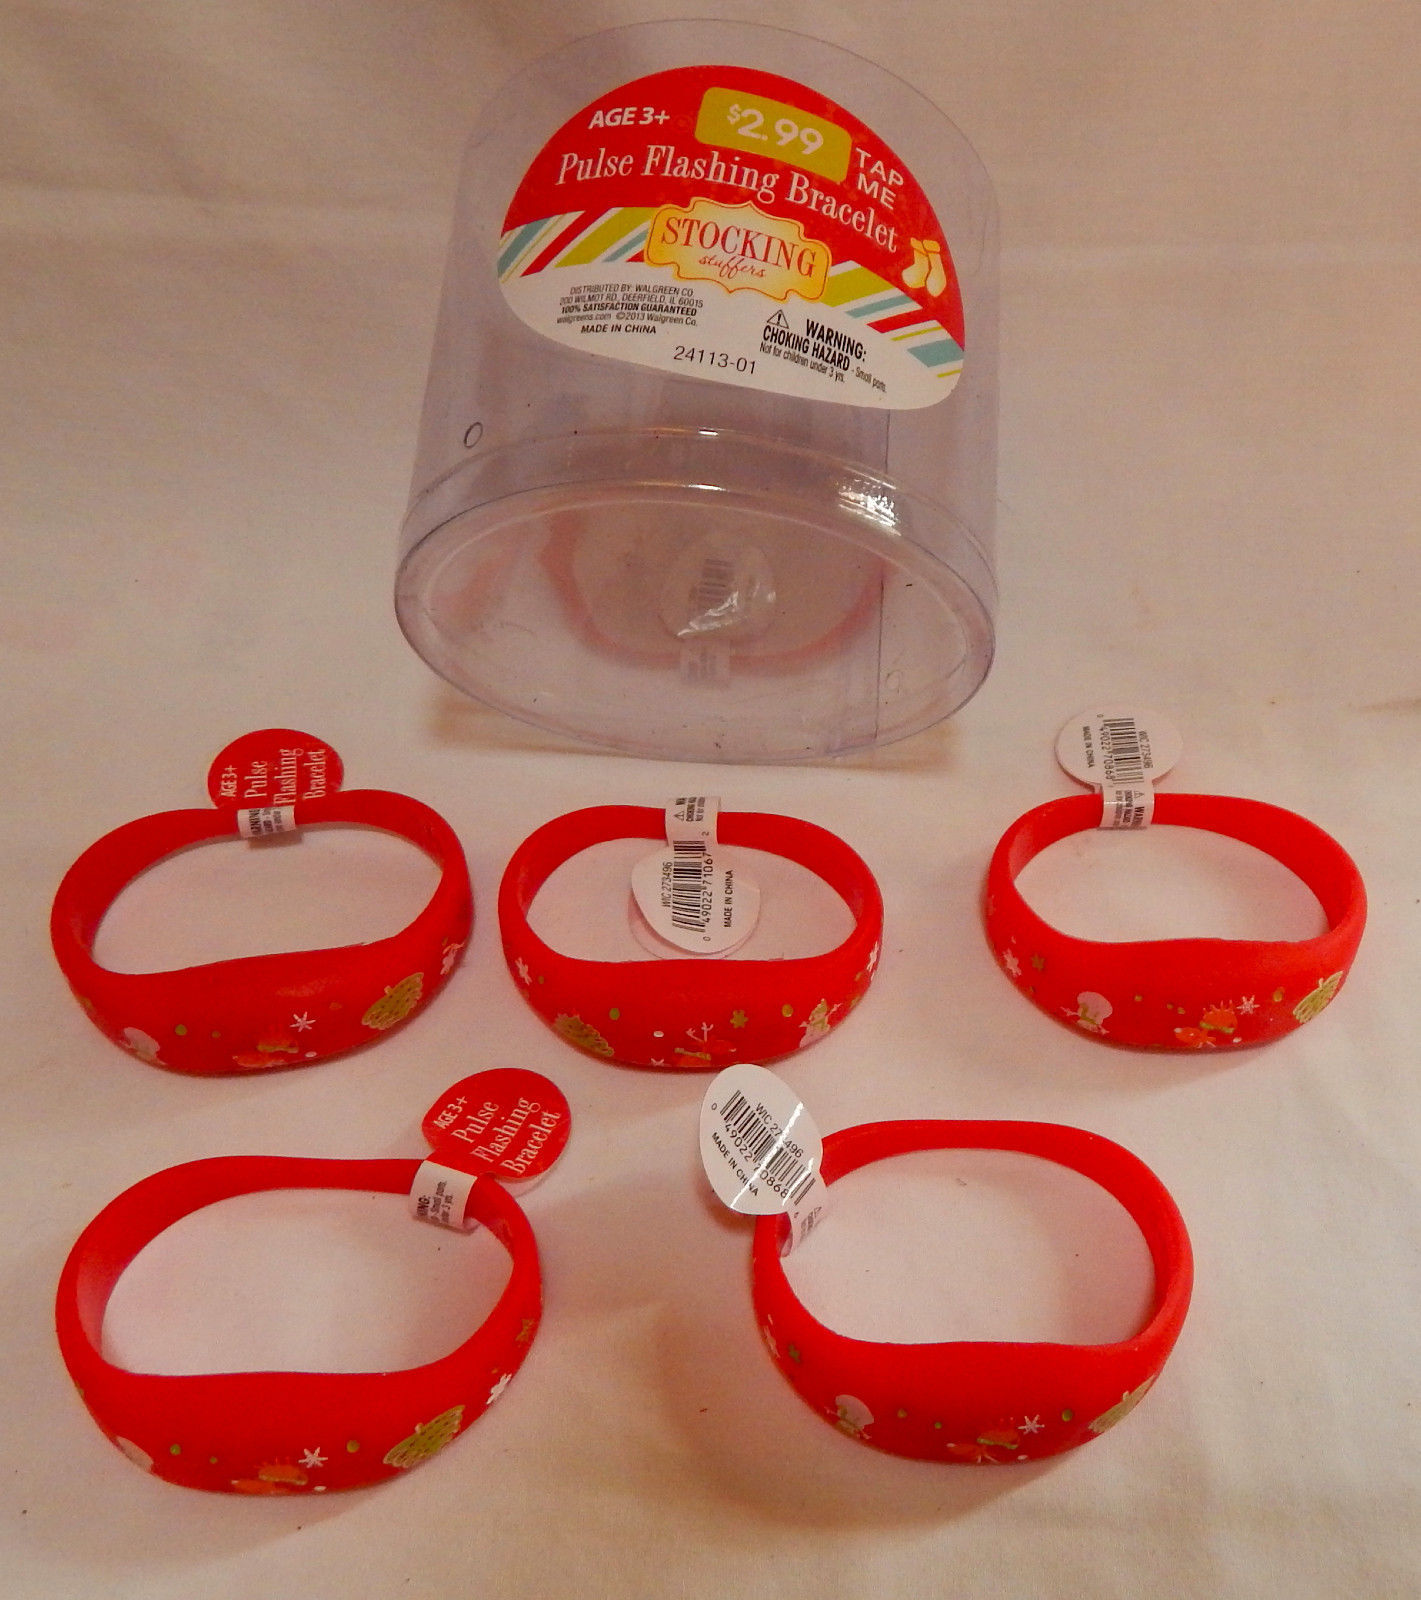 Christmas LED Pulse Flashing Bracelets 5ea Red 3+ By Walgreens Tap to Light 10Y